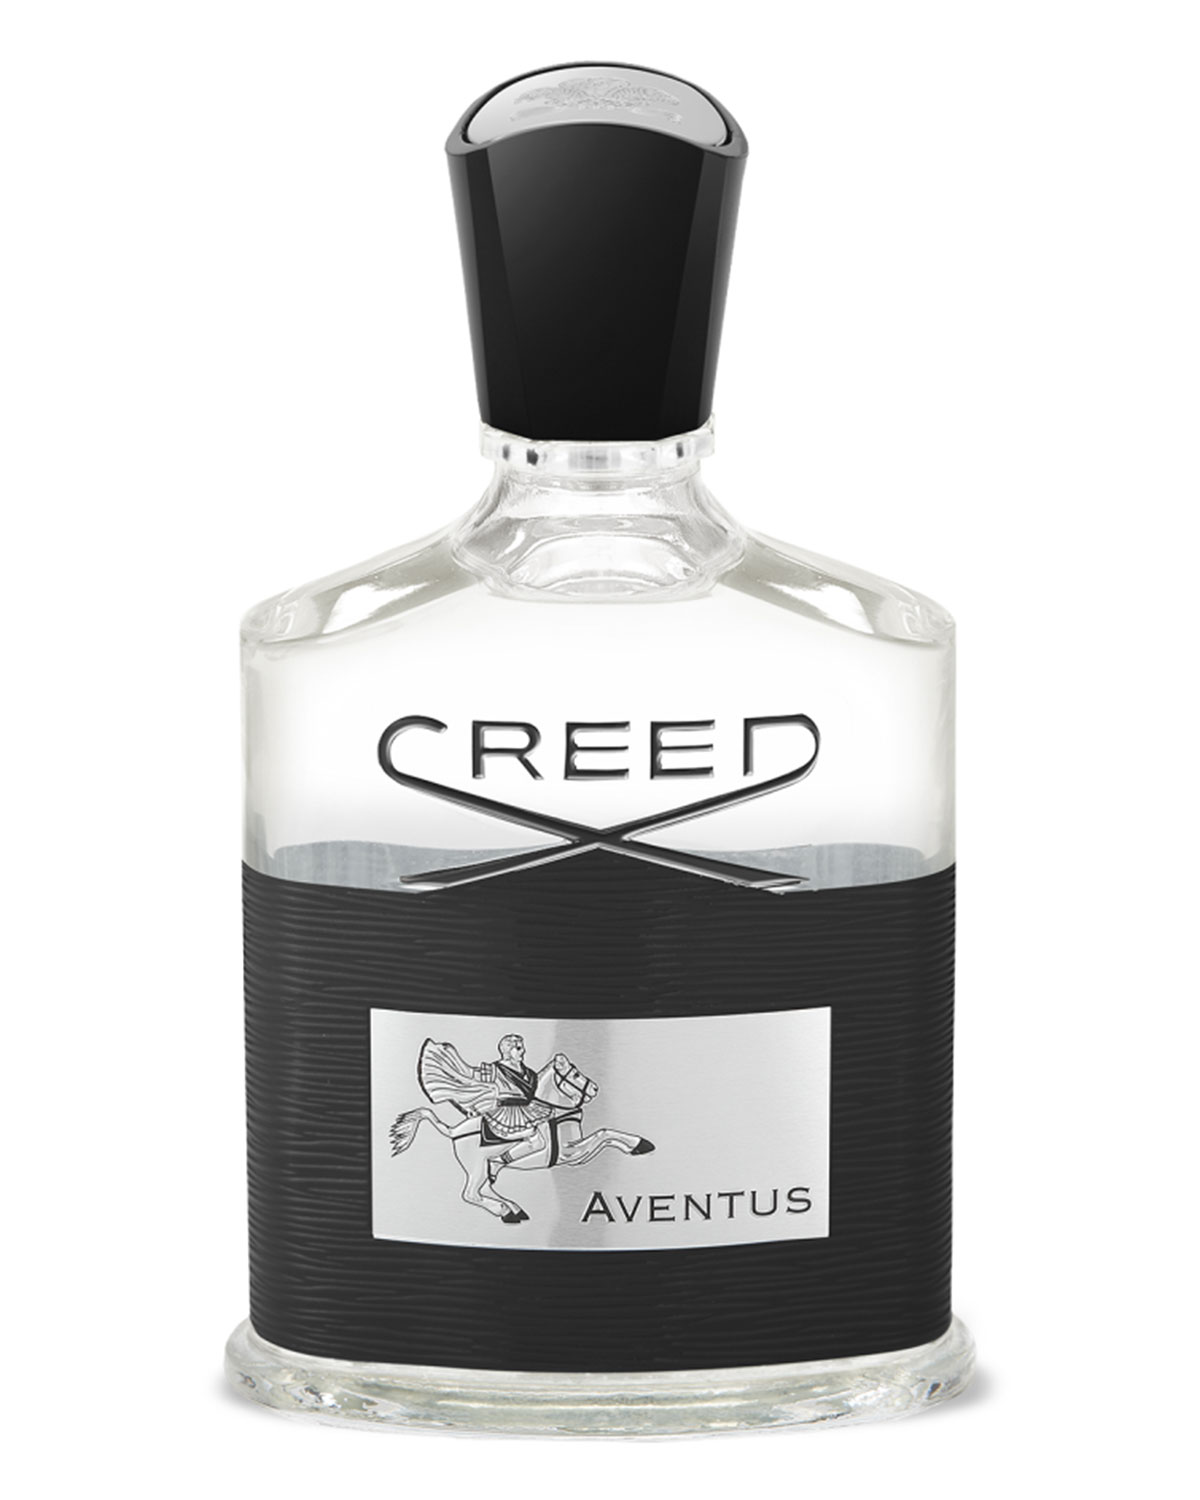 CREED 3.3 oz. Aventus